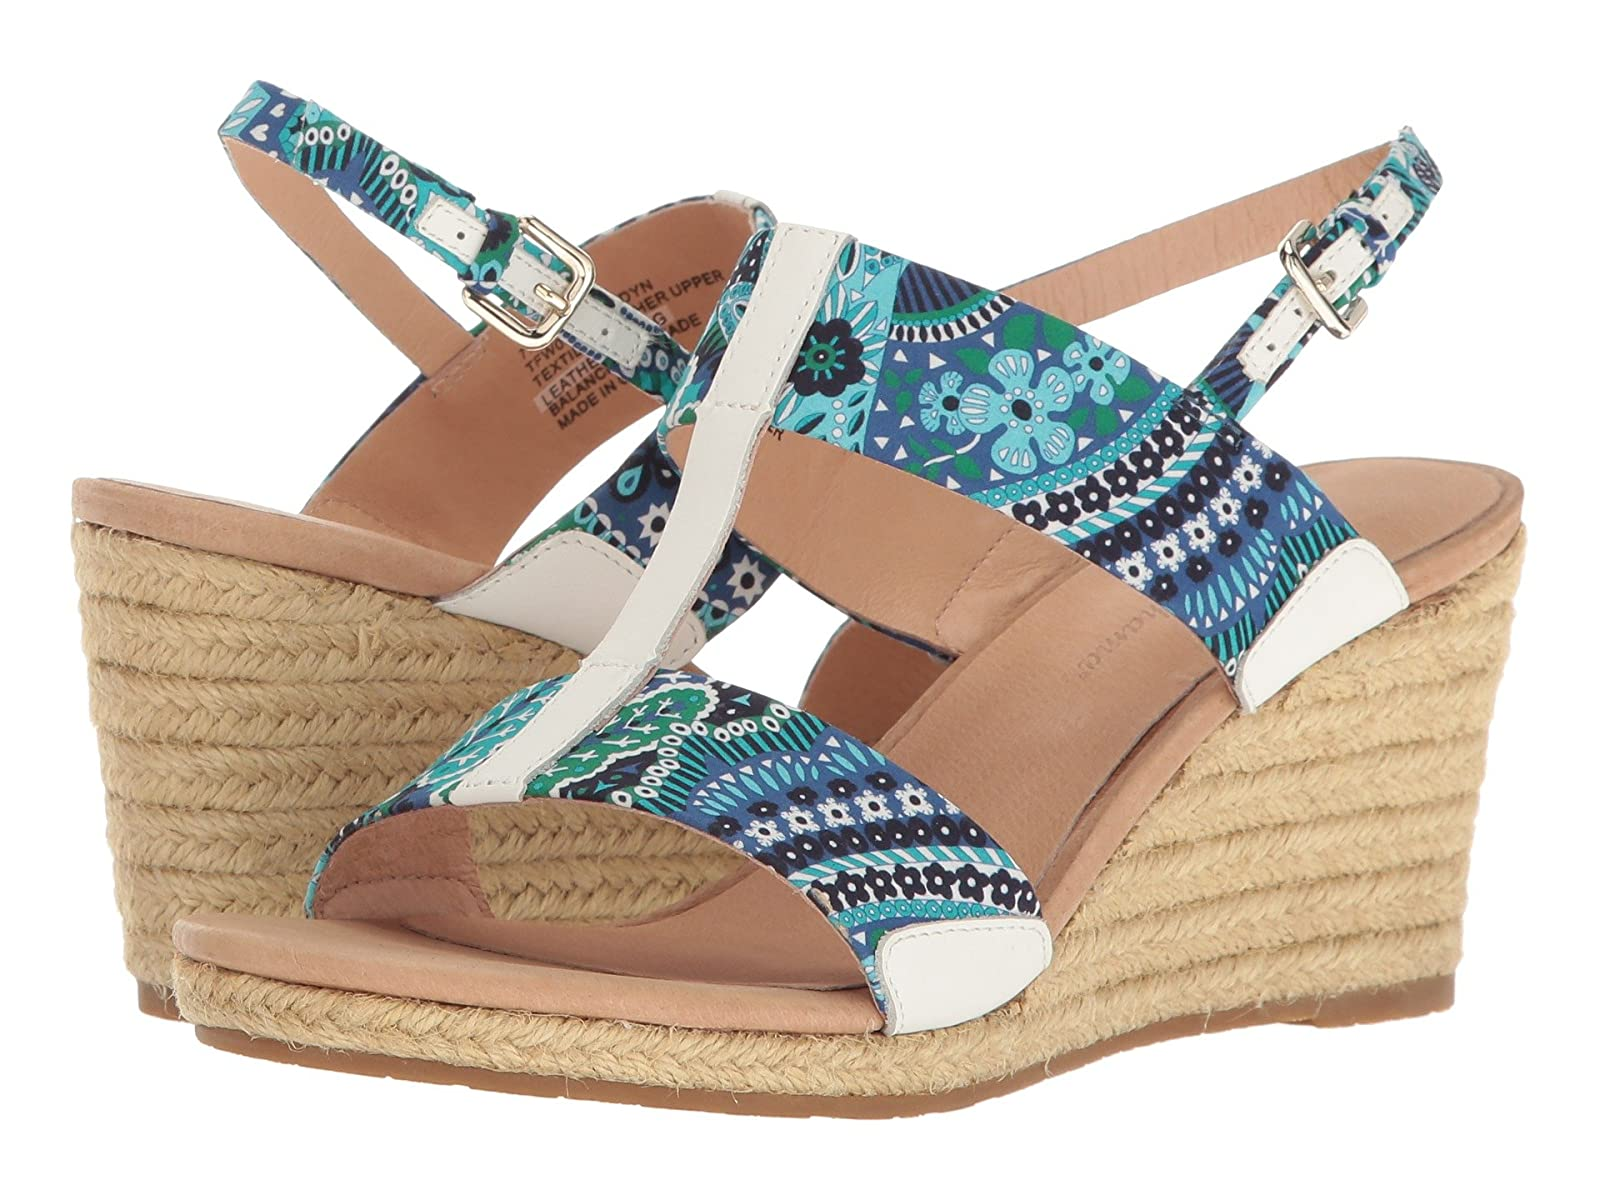 Tommy Bahama JaidynCheap and distinctive eye-catching shoes